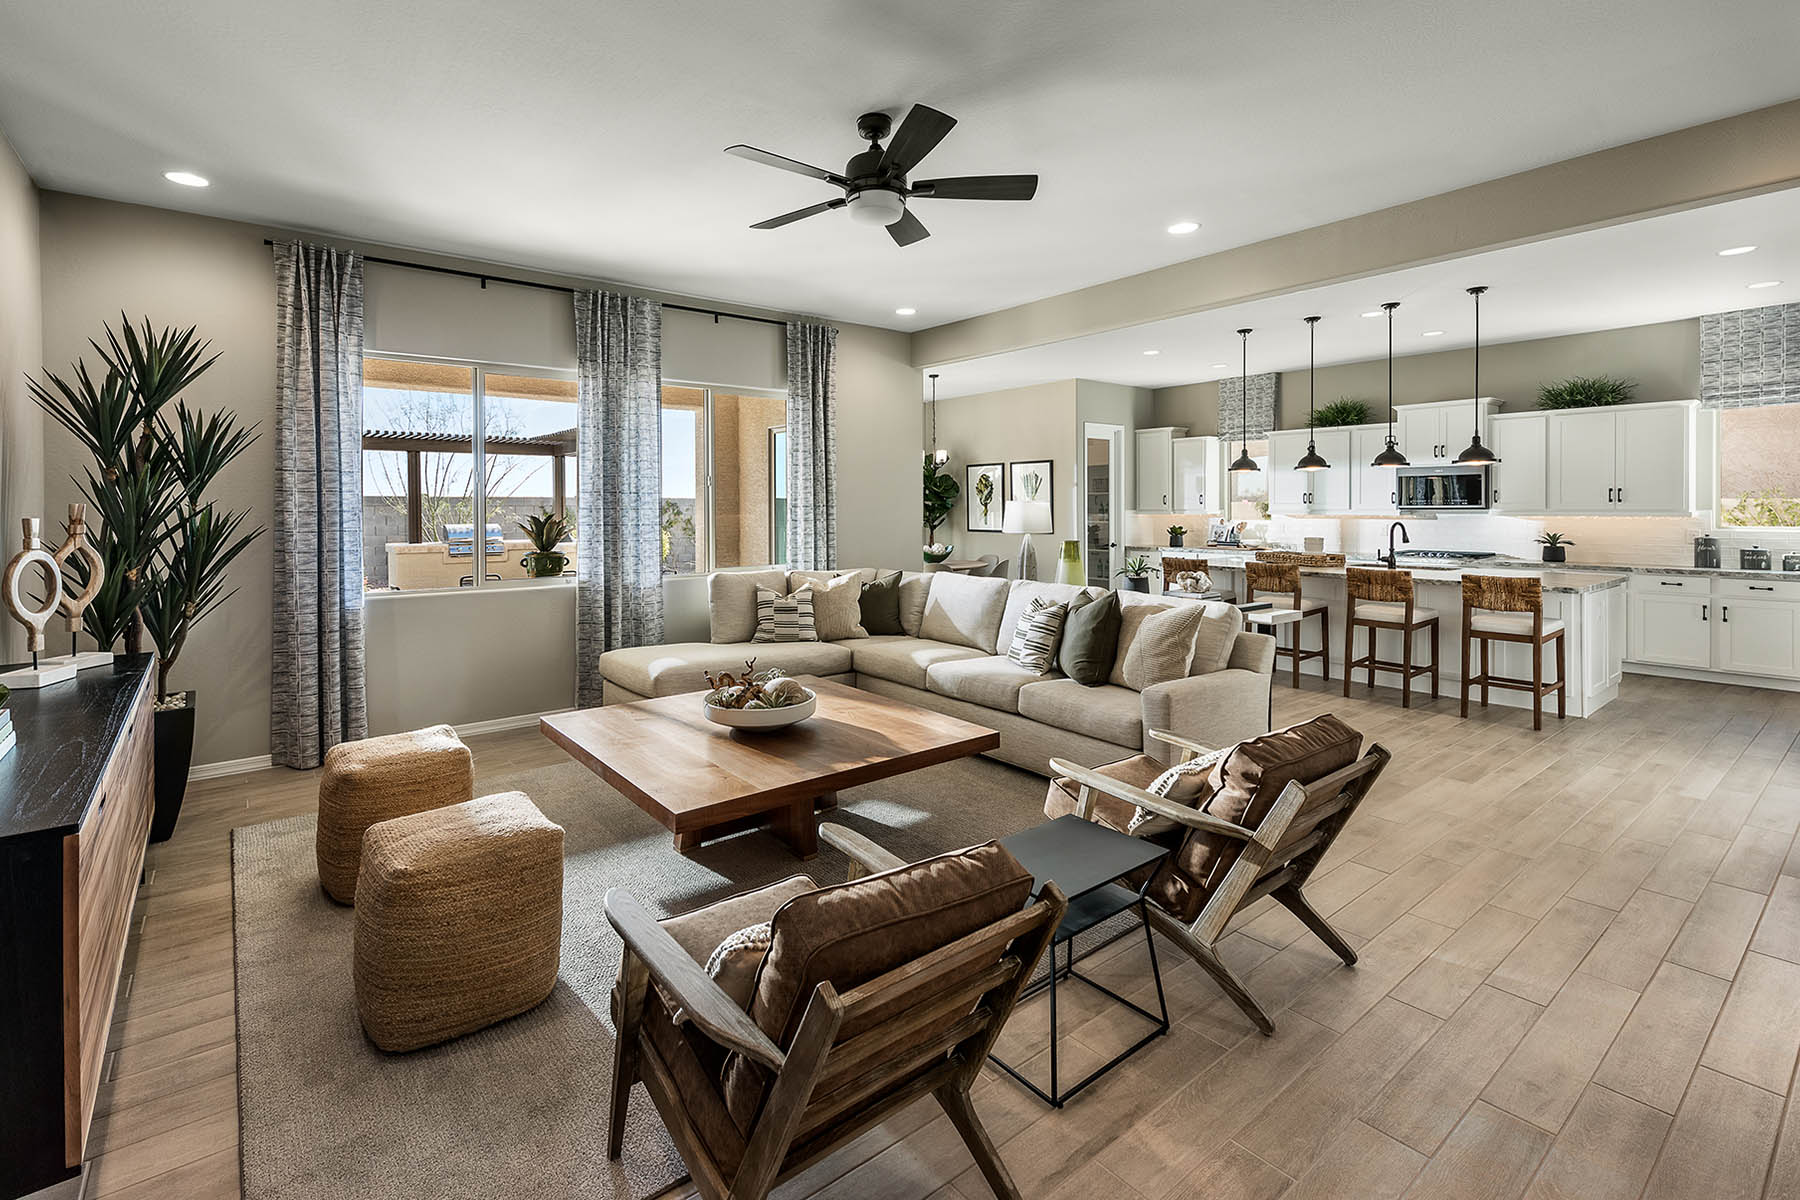 Azure Canyon Greatroom in Litchfield Park Arizona by Mattamy Homes